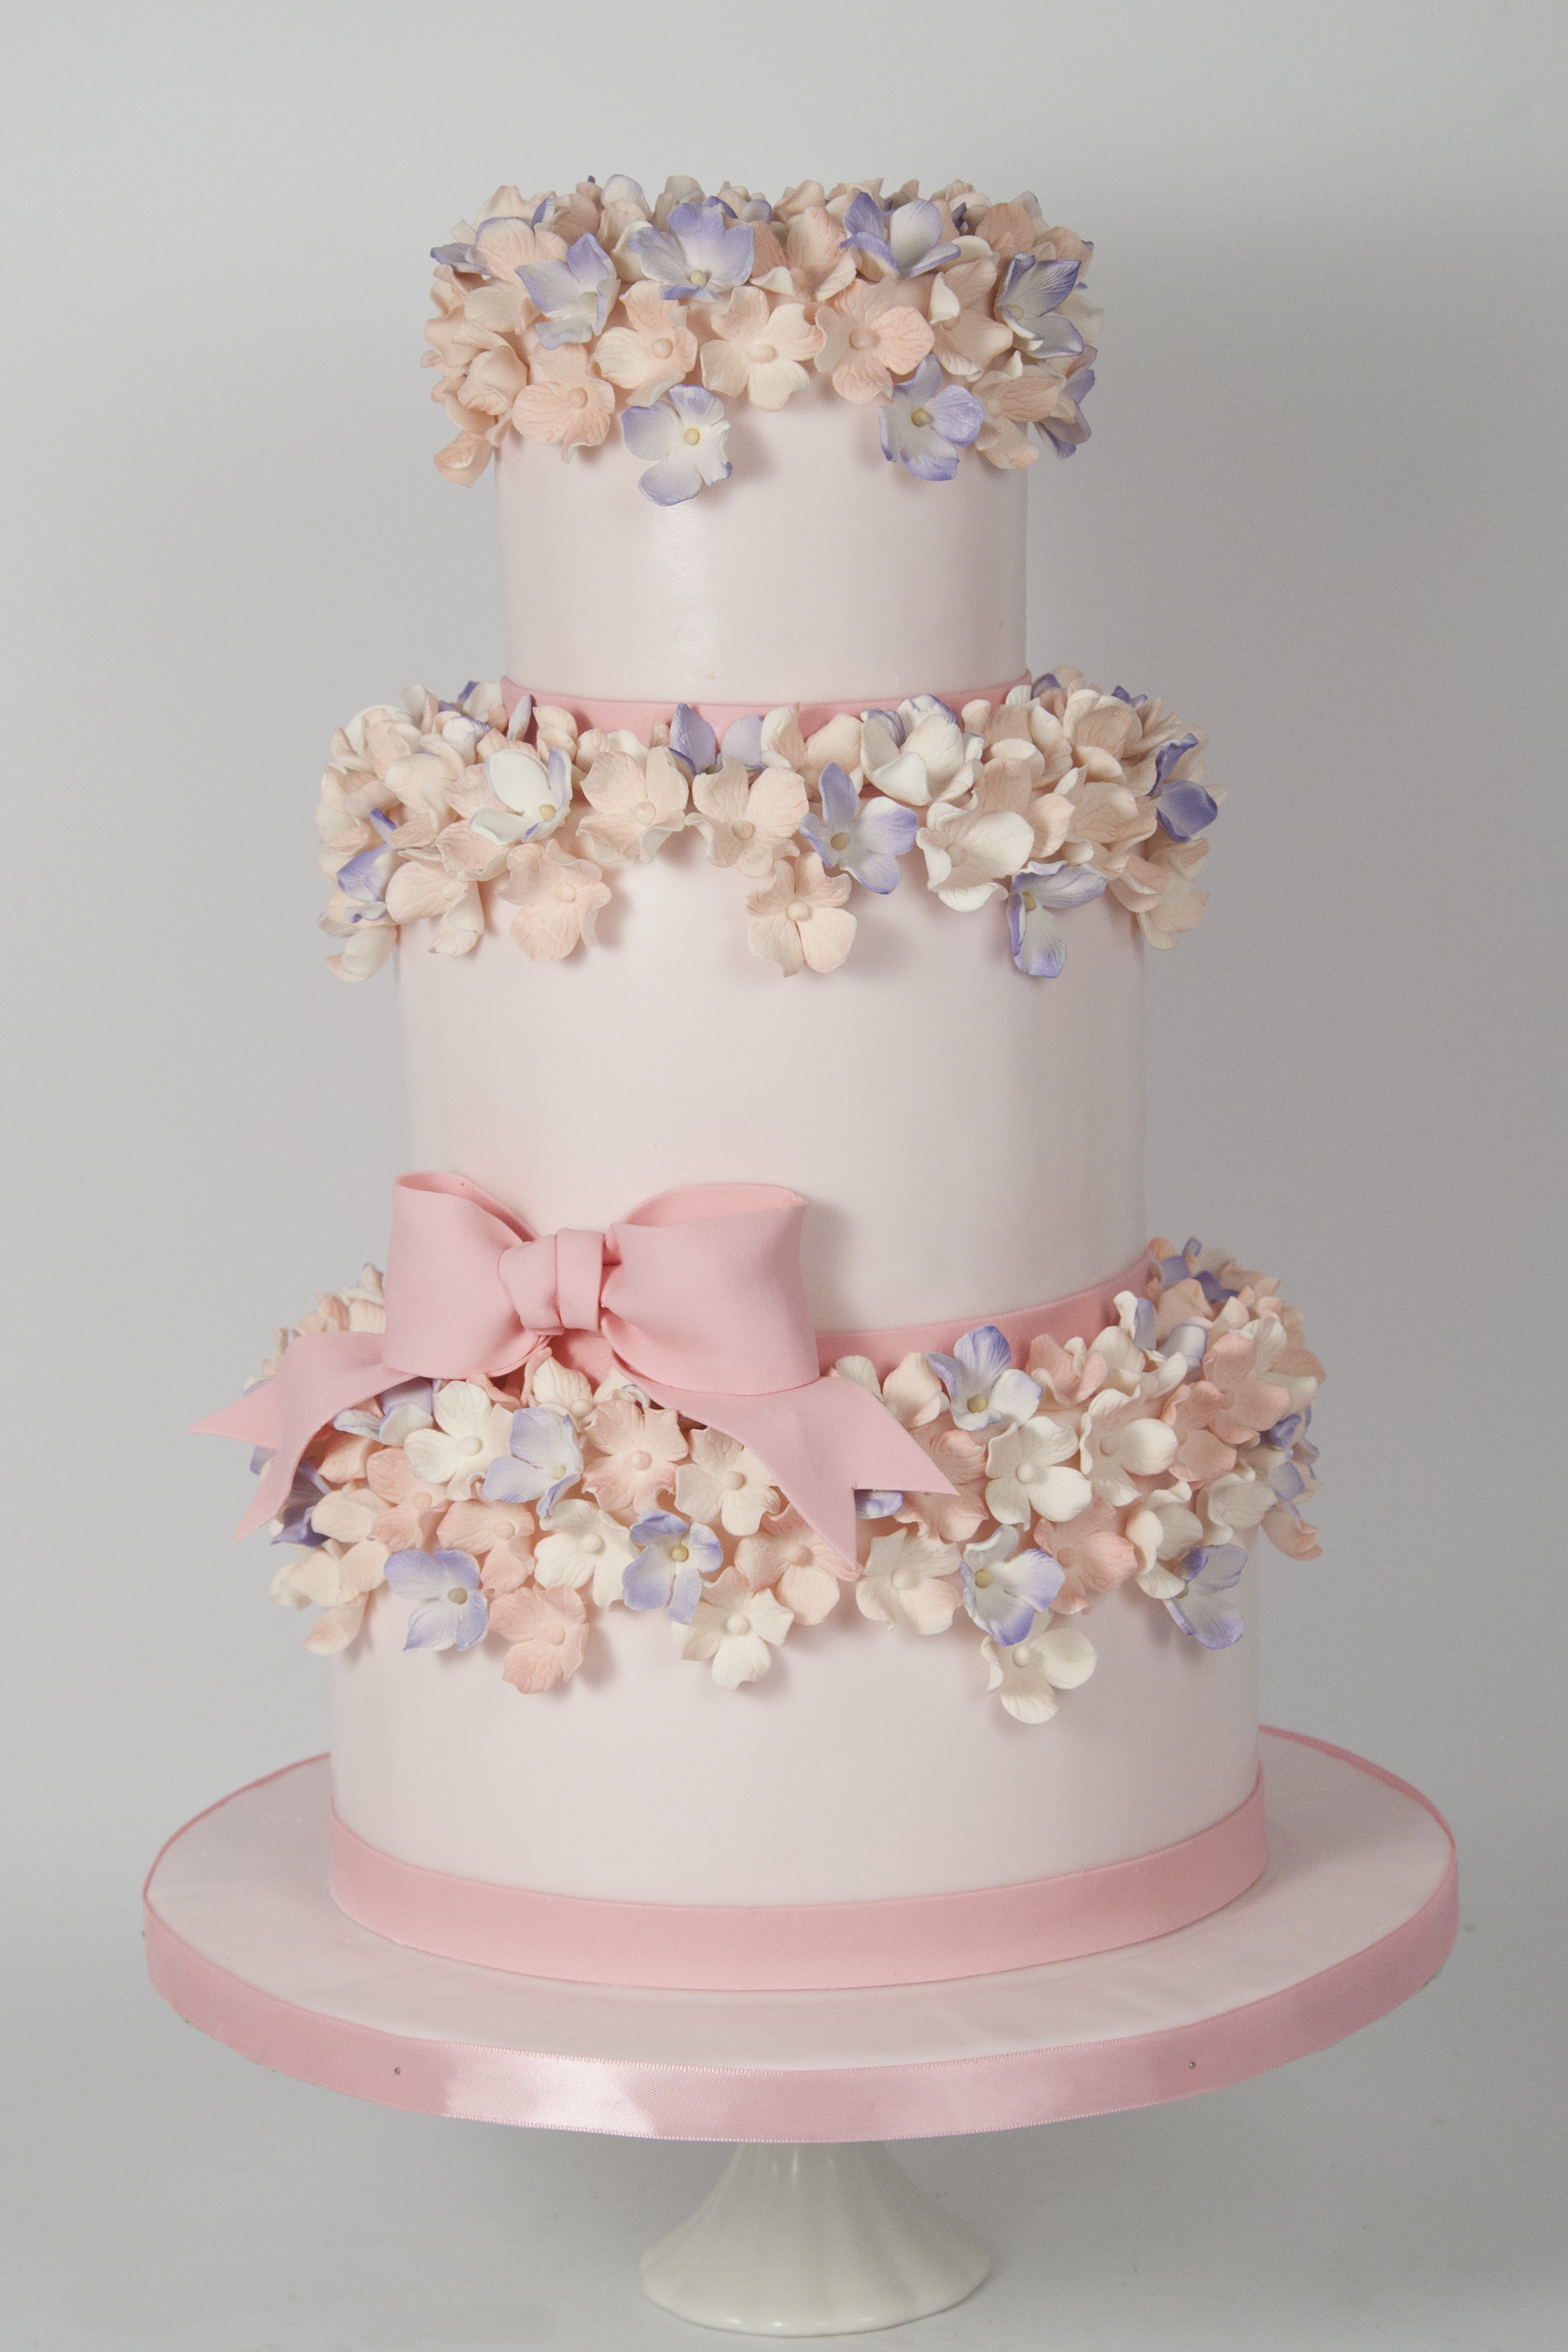 Custom Wedding Cakes - For The Love Of Cake - Shop In-store Or Online